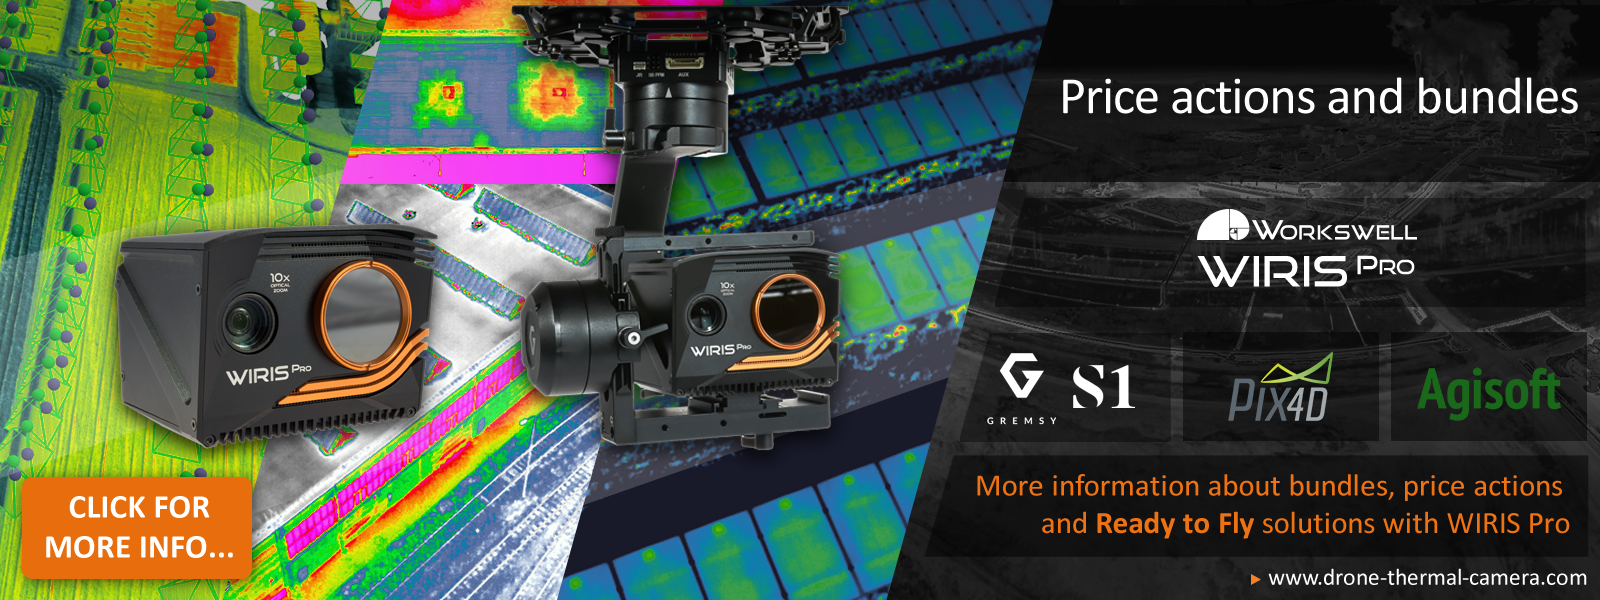 📸 Thermal camera - Workswell WIRIS Pro